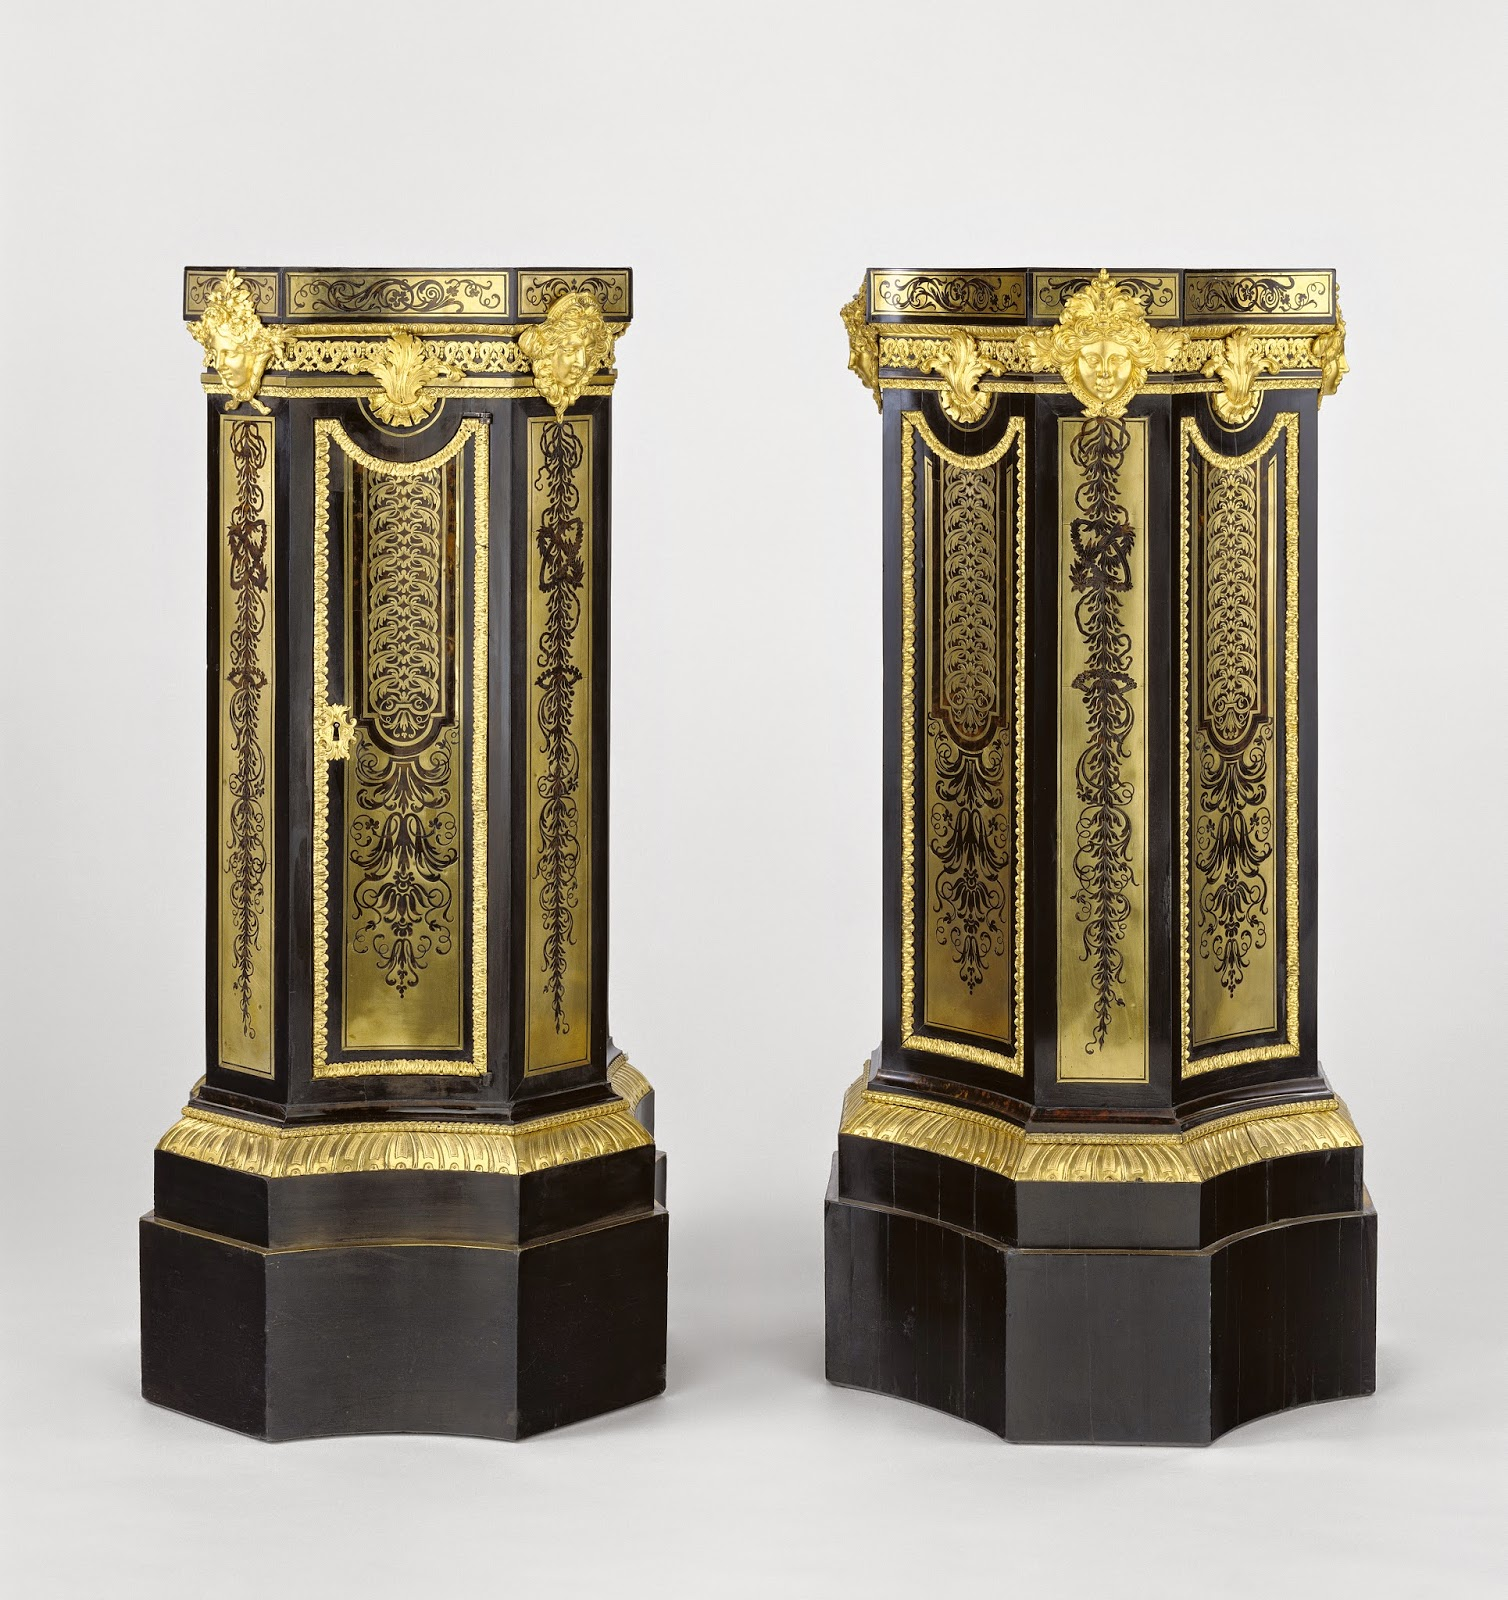 Pair of Pedestals, attributed to André-Charles Boulle, about 1700, Fir, oak and walnut veneered with ebony, dyed fruit wood (probably pear) brass and tortoise shell; gilt bronze mounts